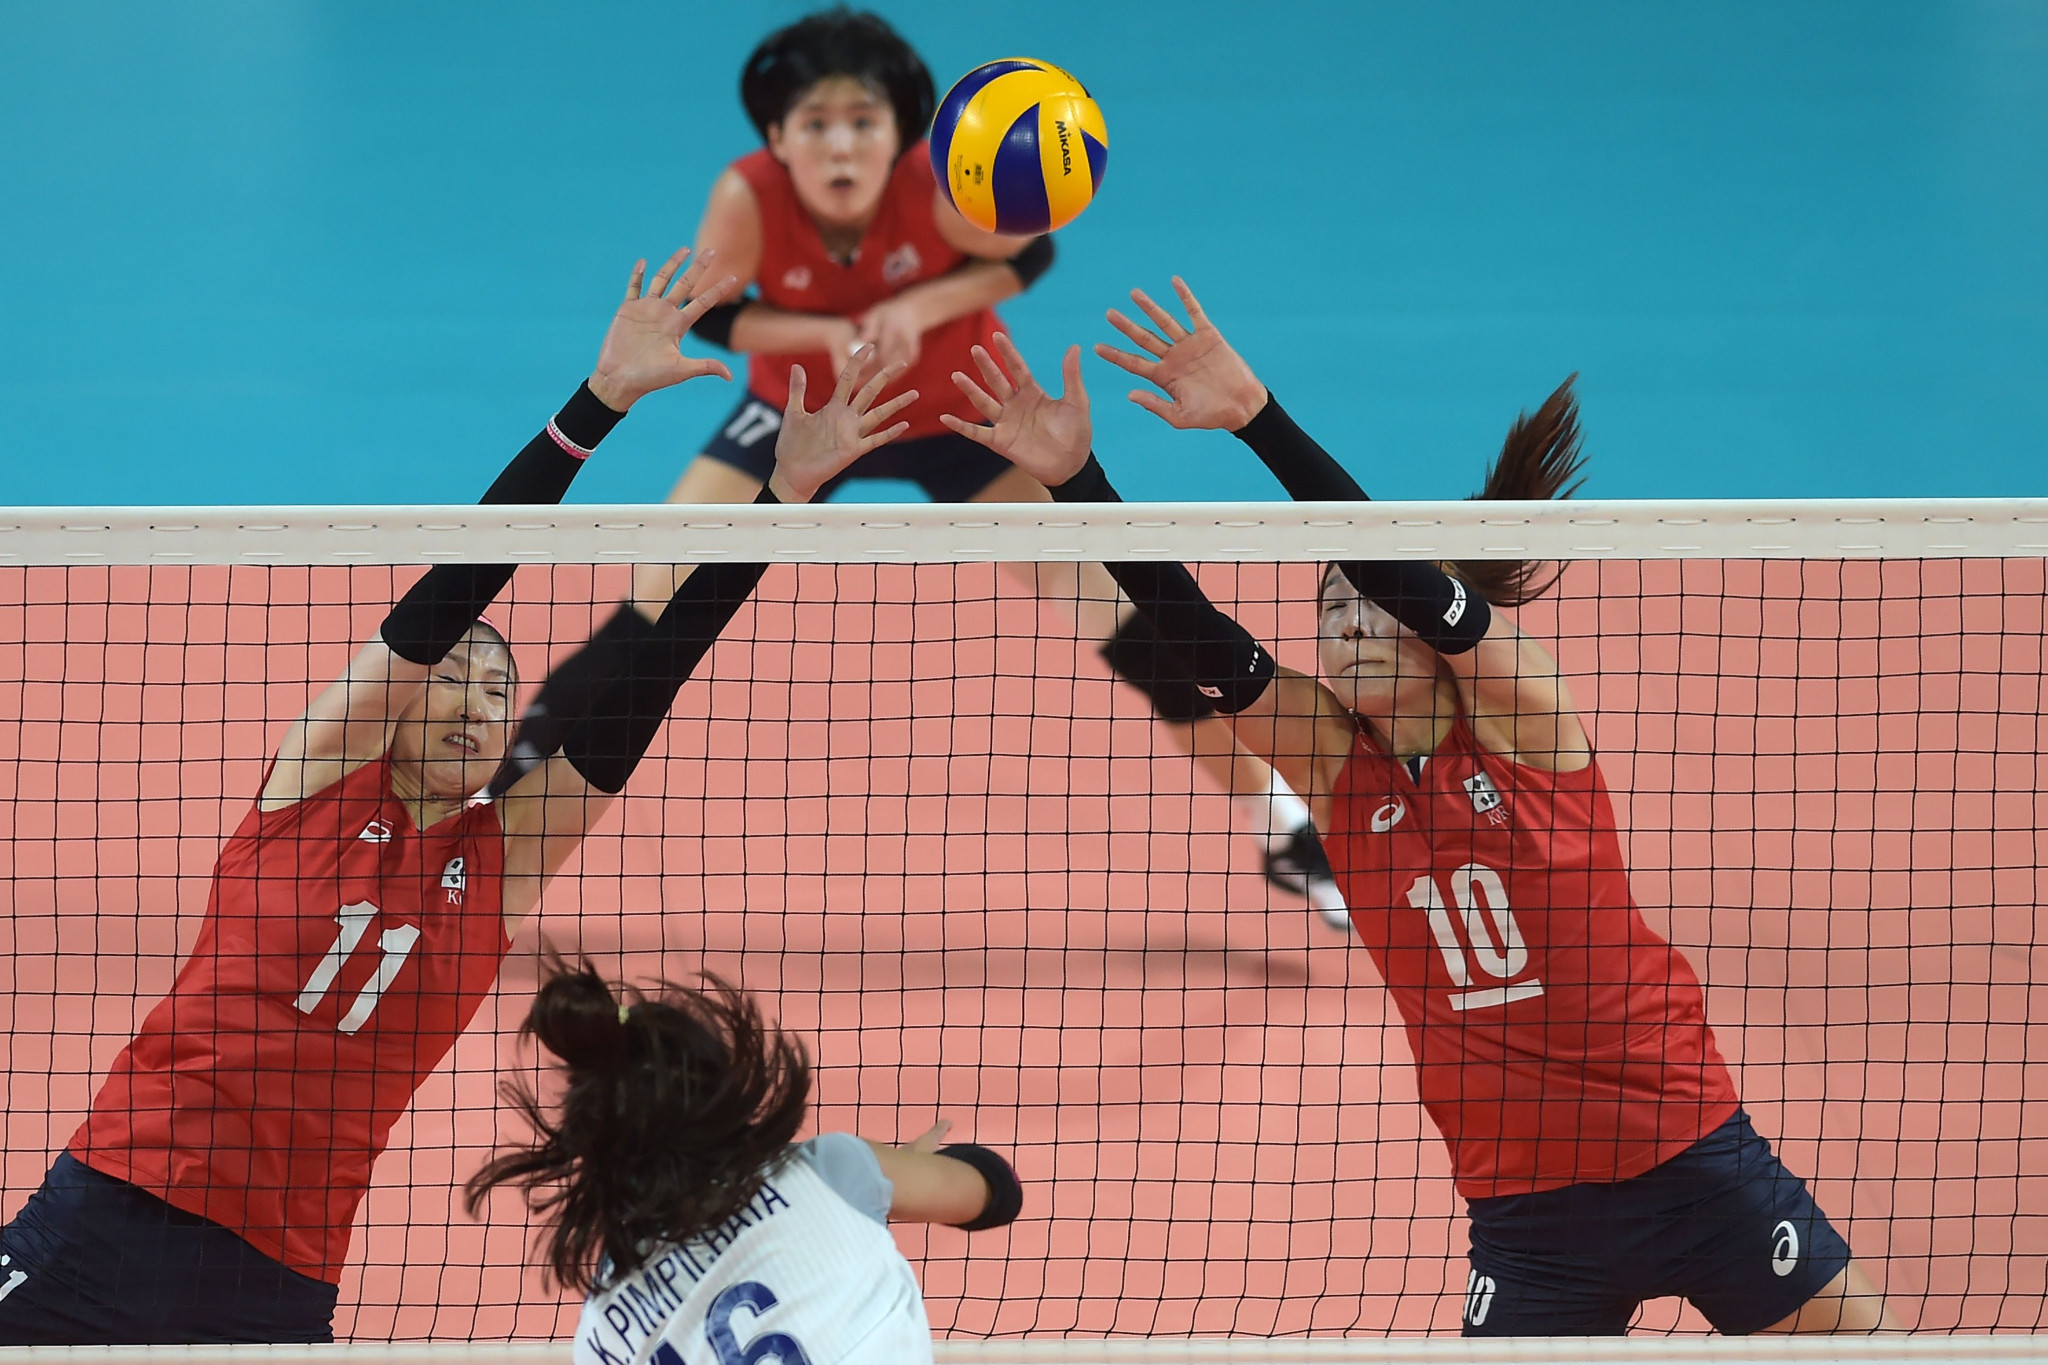 South Korea to host Asian Women's Volleyball Championship for first time